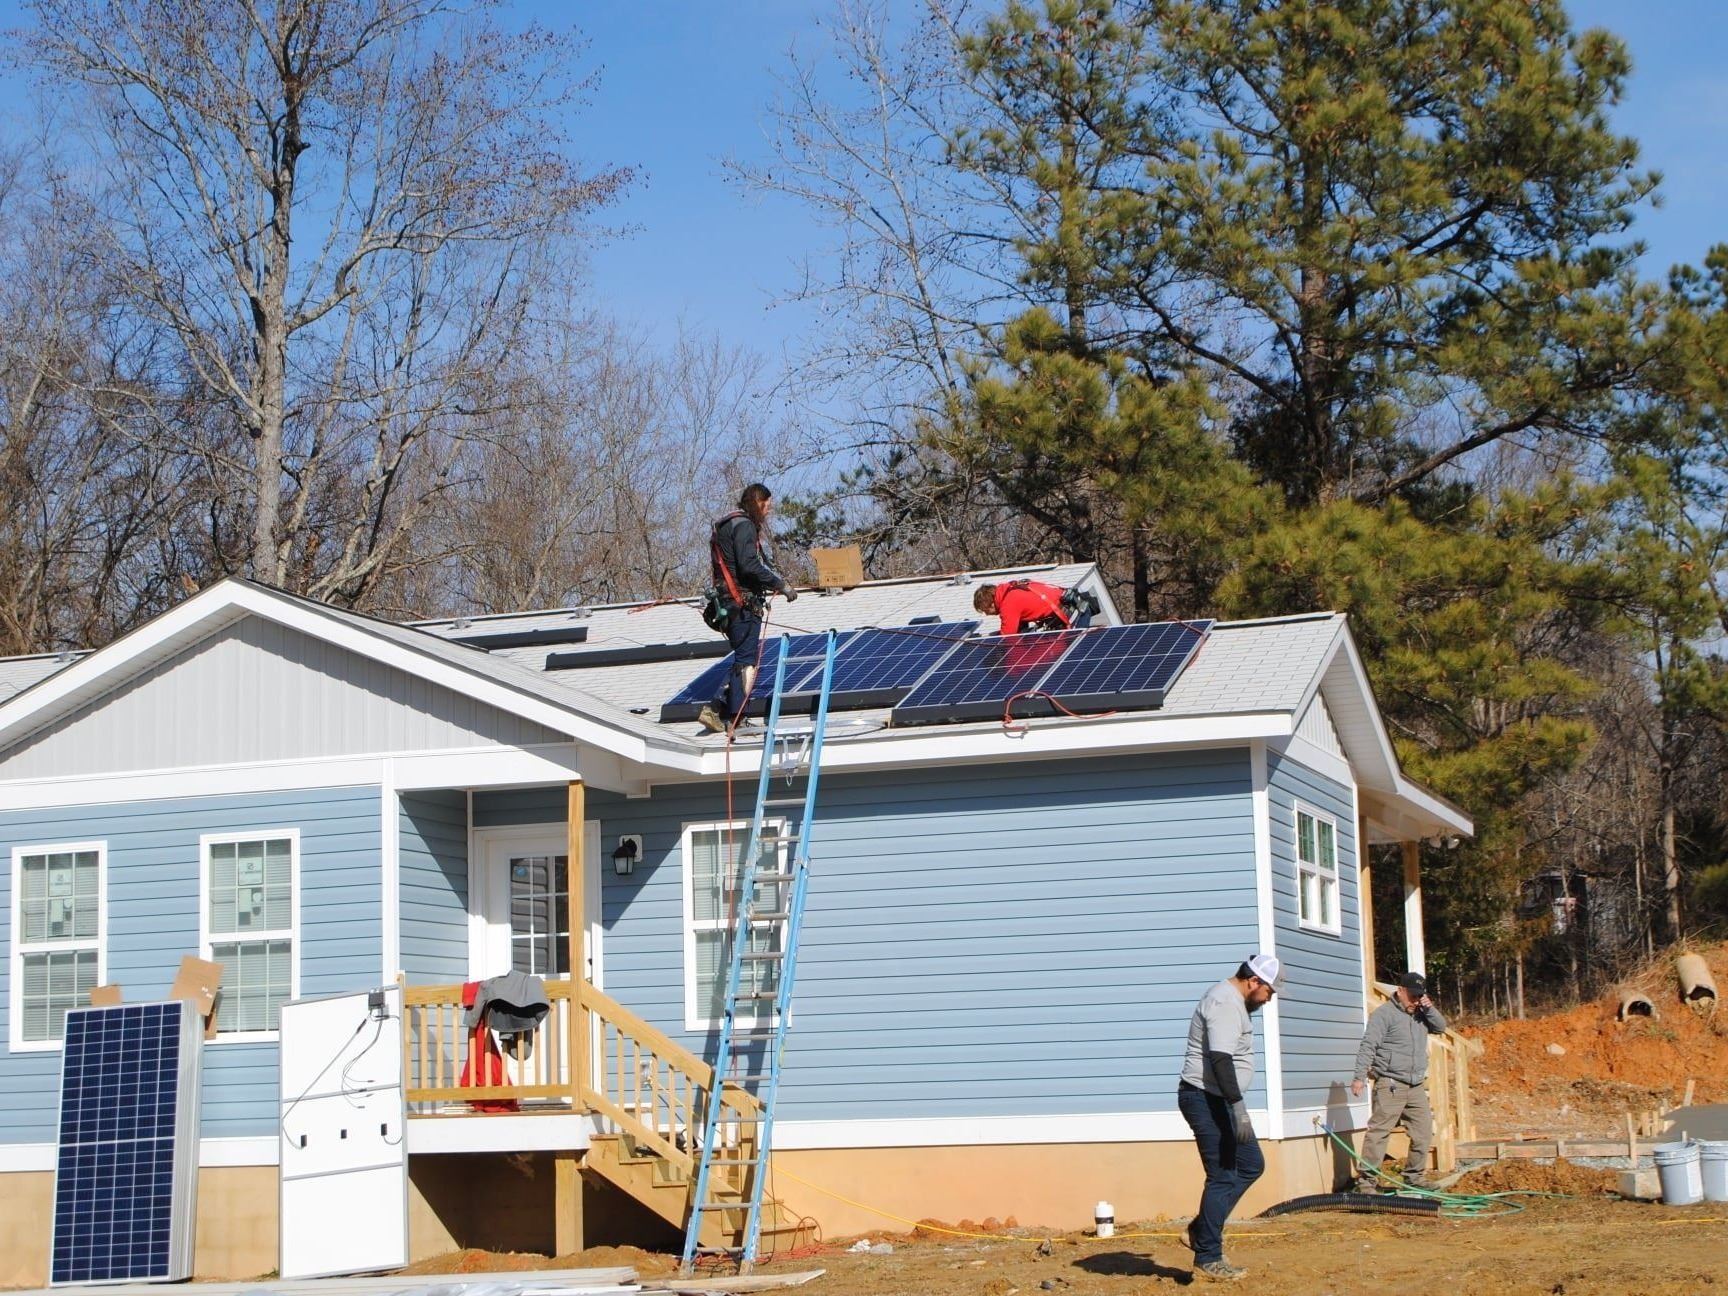 Photo of rooftop solar panels on Habitat home